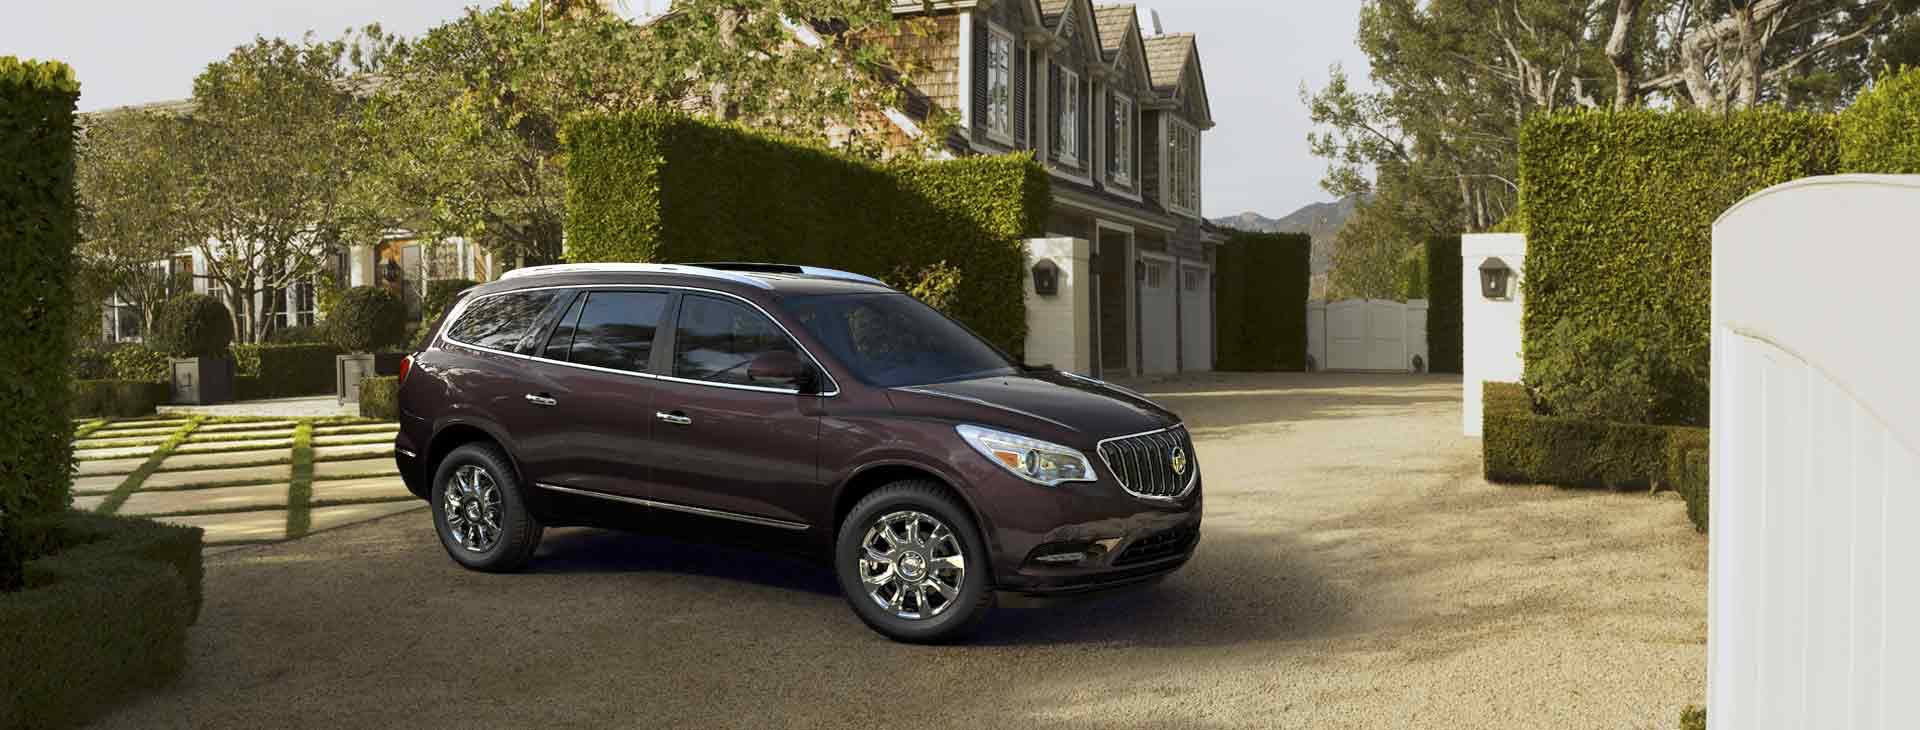 2016 Buick Enclave Info, Pictures, Specs, Wiki | Gm Authority Can A New 2022 Buick Enclave Be Flat Towed